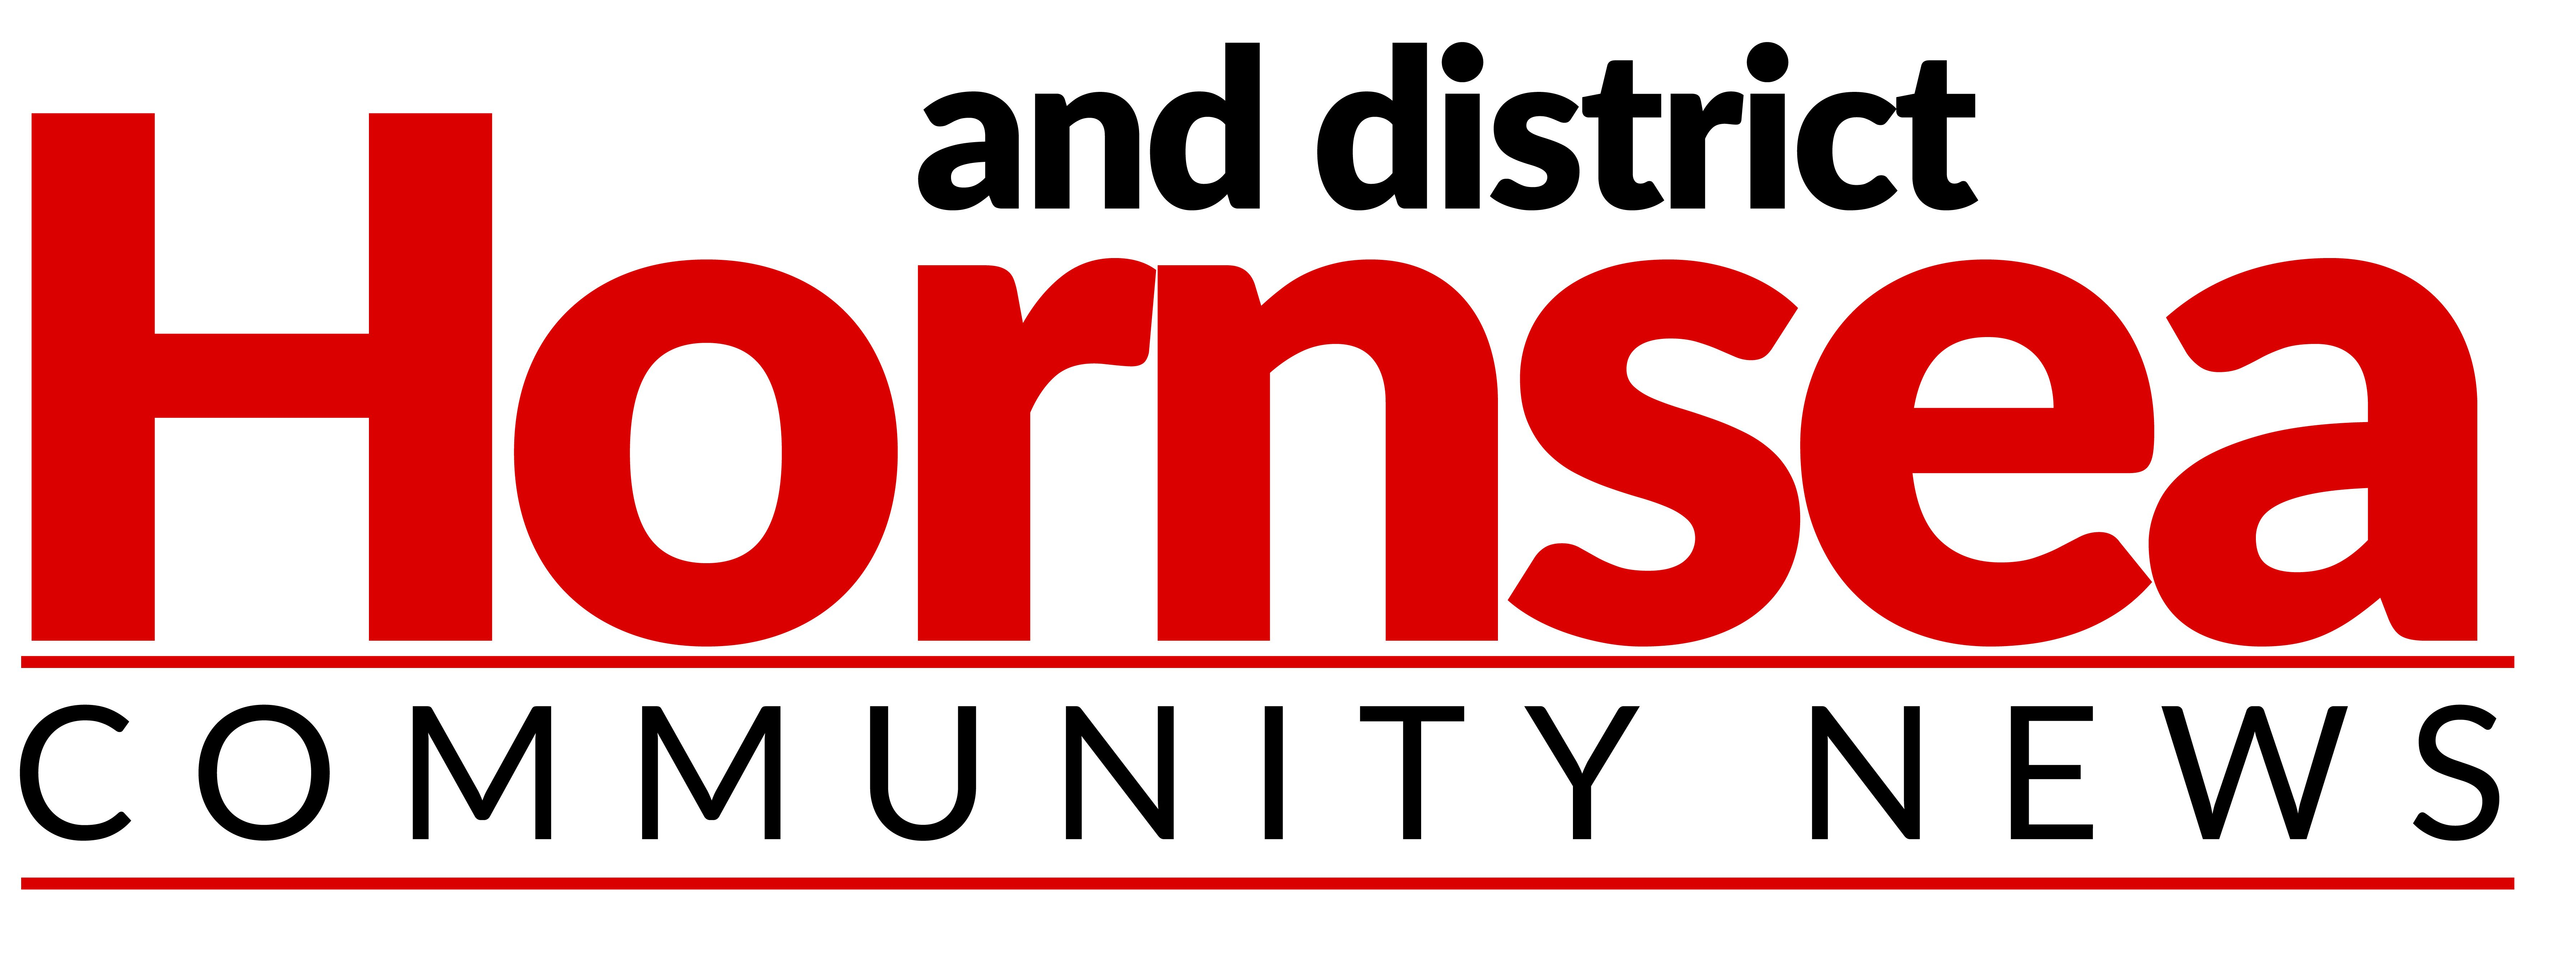 Hornsea Community News